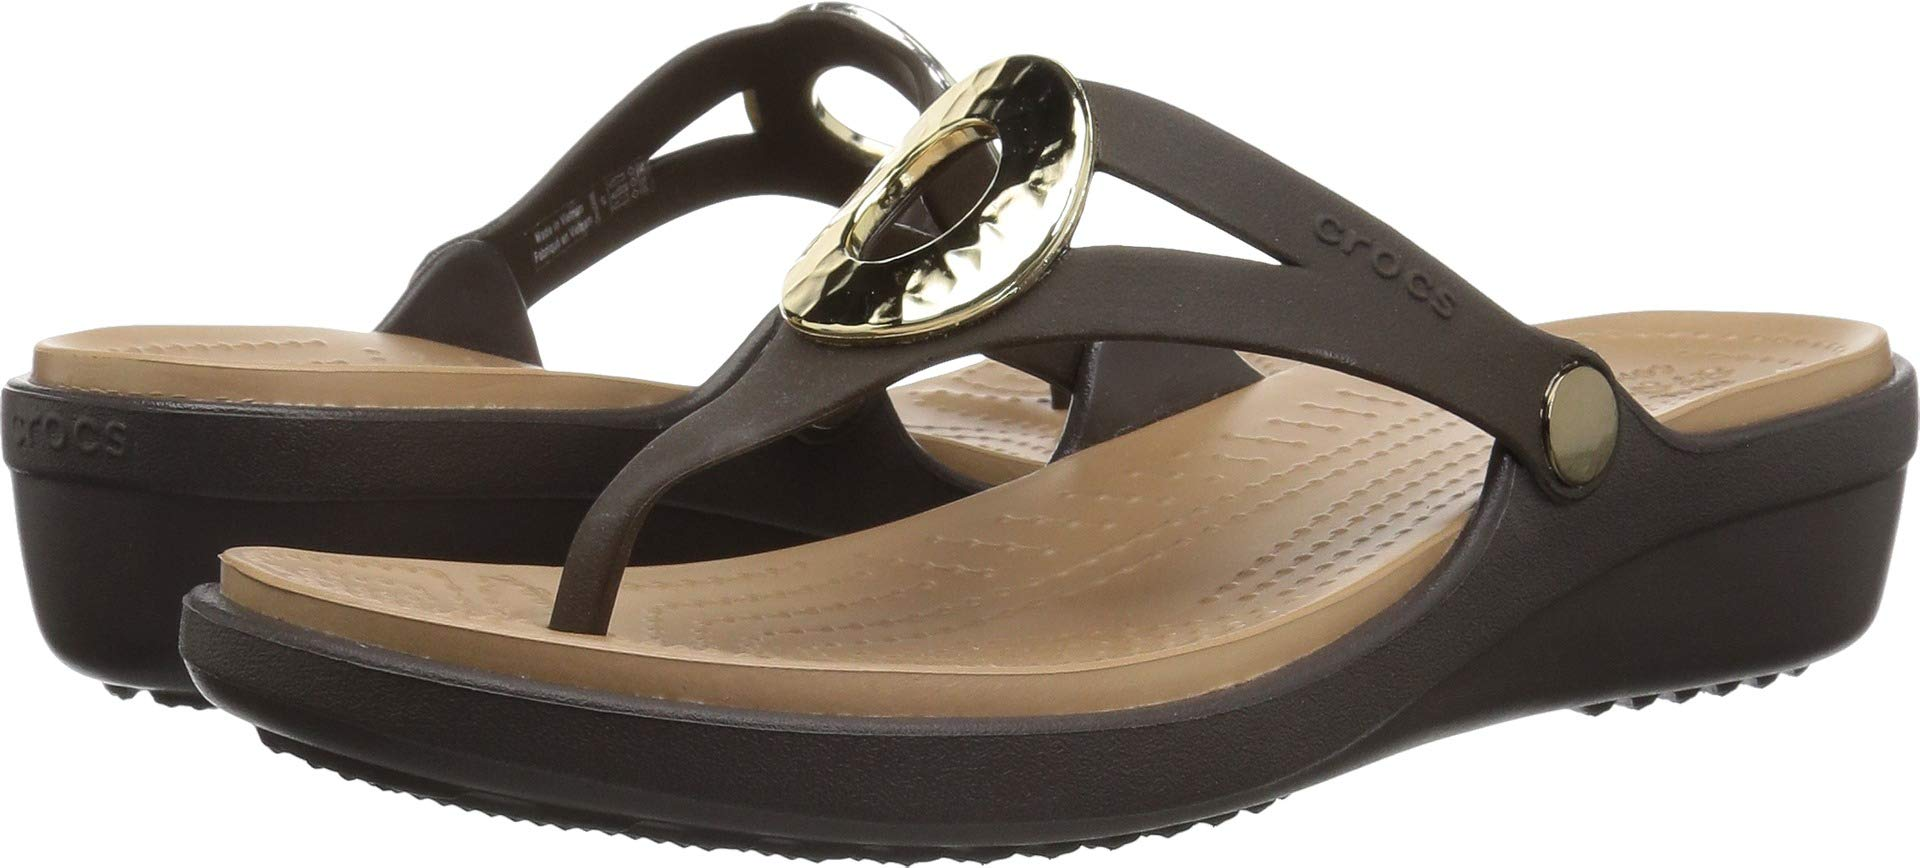 Crocs Women's Sanrah Hammered Met Flip Wedge Sandal, Espresso/Gold, W8 M US